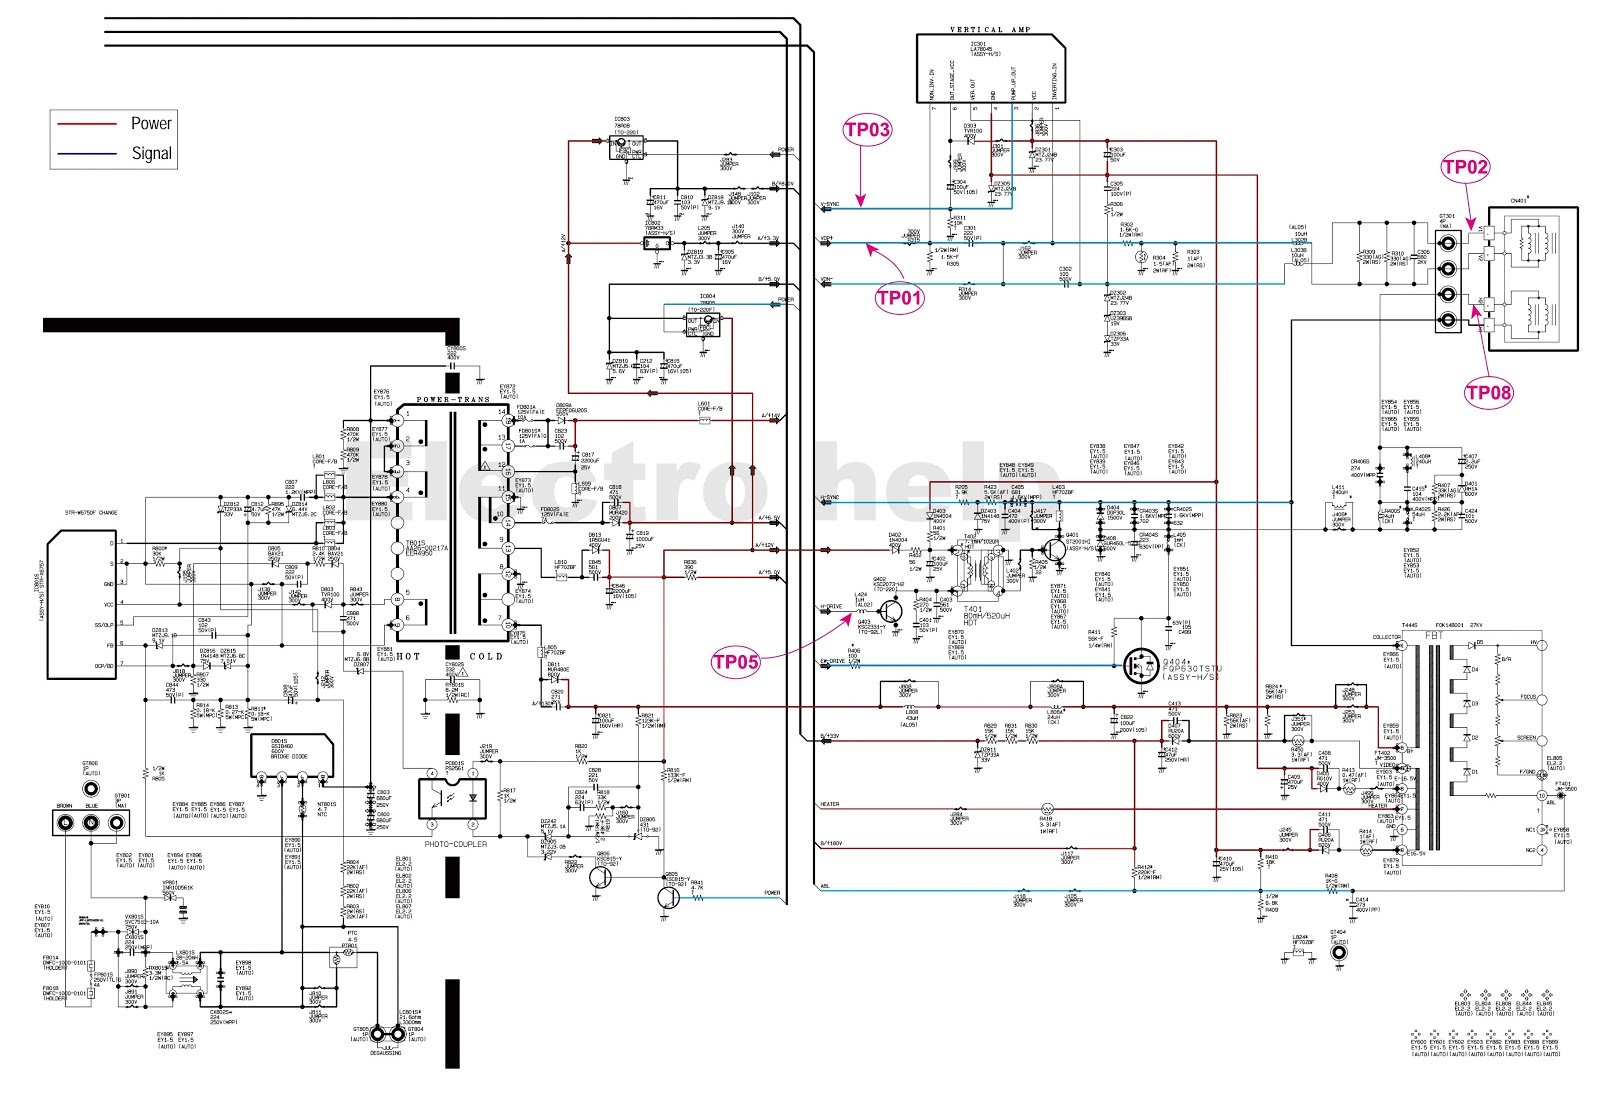 samsung wiring diagram wiring diagram schematics samsung dishwasher wiring diagram samsung tv wiring diagram wiring diagram [ 1600 x 1100 Pixel ]